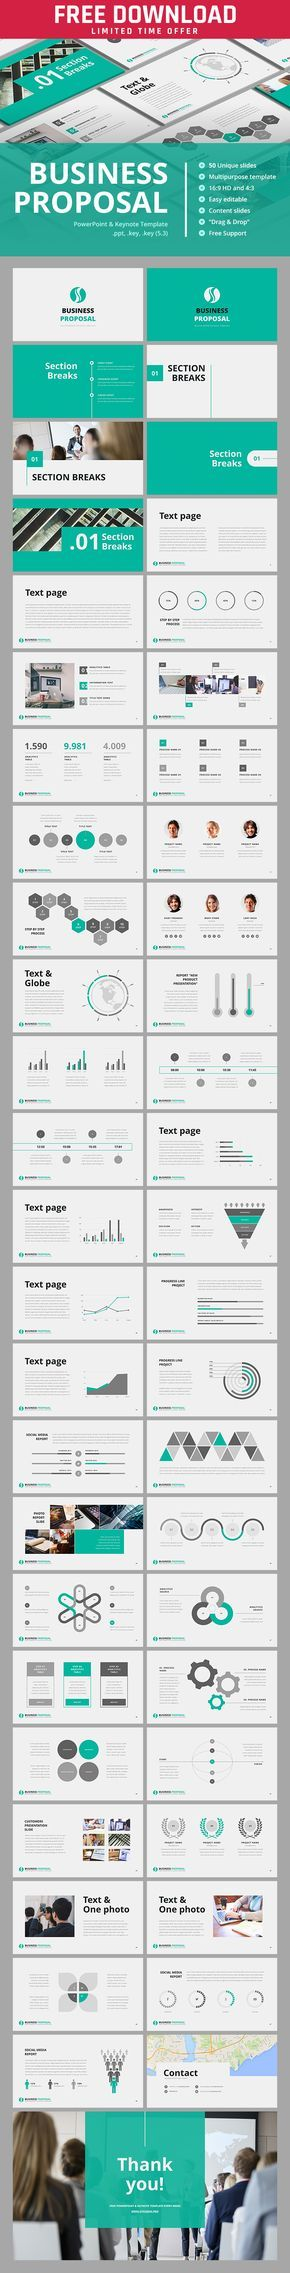 FREE Download    site2maxpro promony   - business proposal template free download